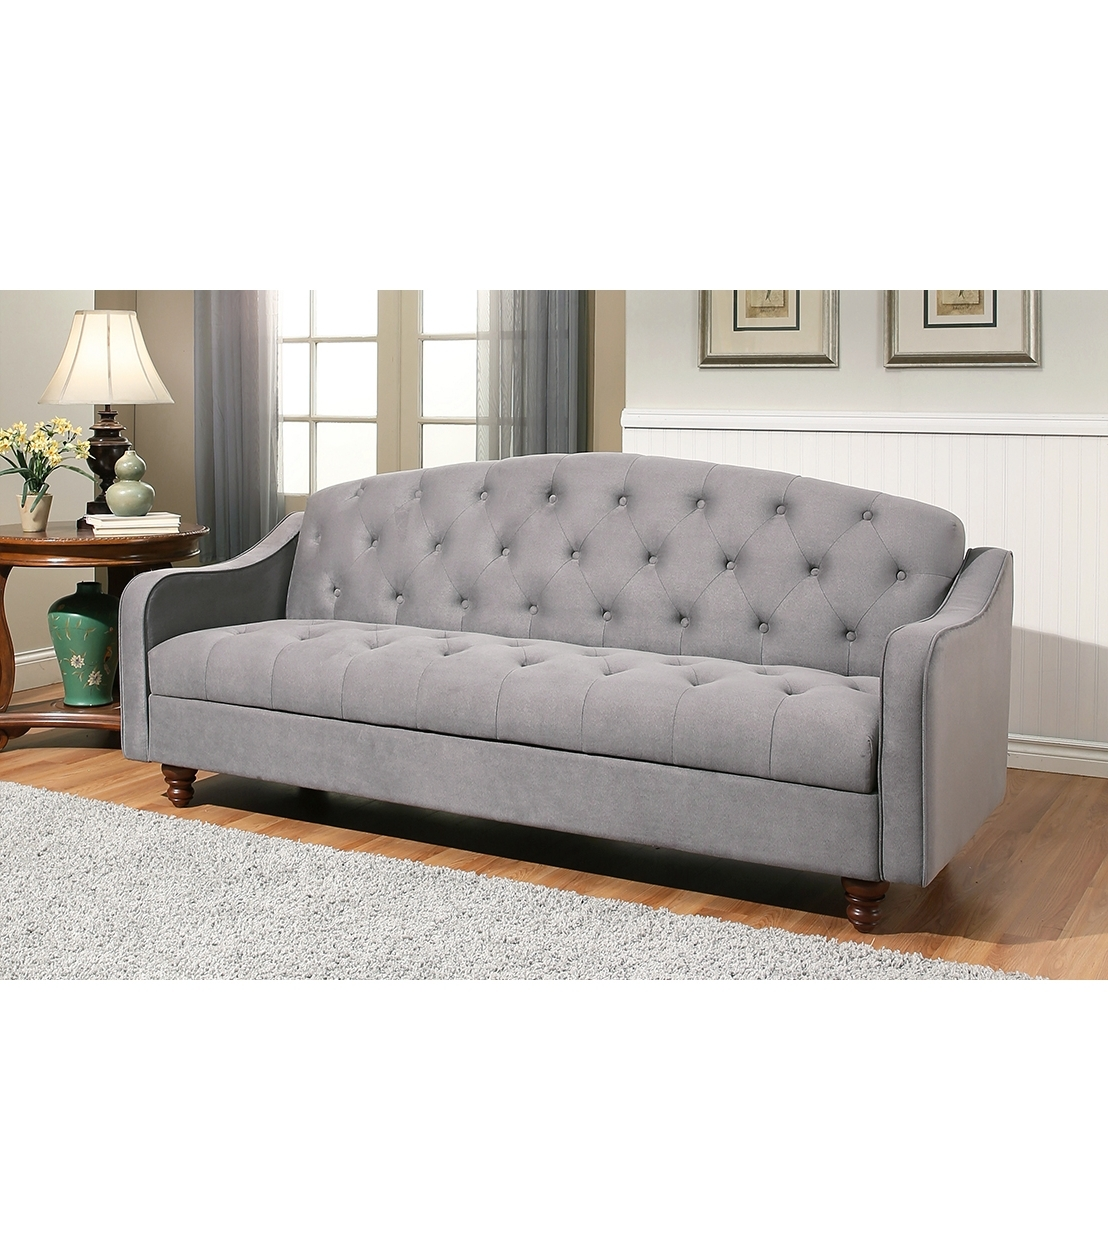 Kijiji Mississauga Sectional Sofas Regarding Well Known Furniture : Quirky Chesterfield Sofa Kijiji Sofa Set Mississauga (Gallery 3 of 20)